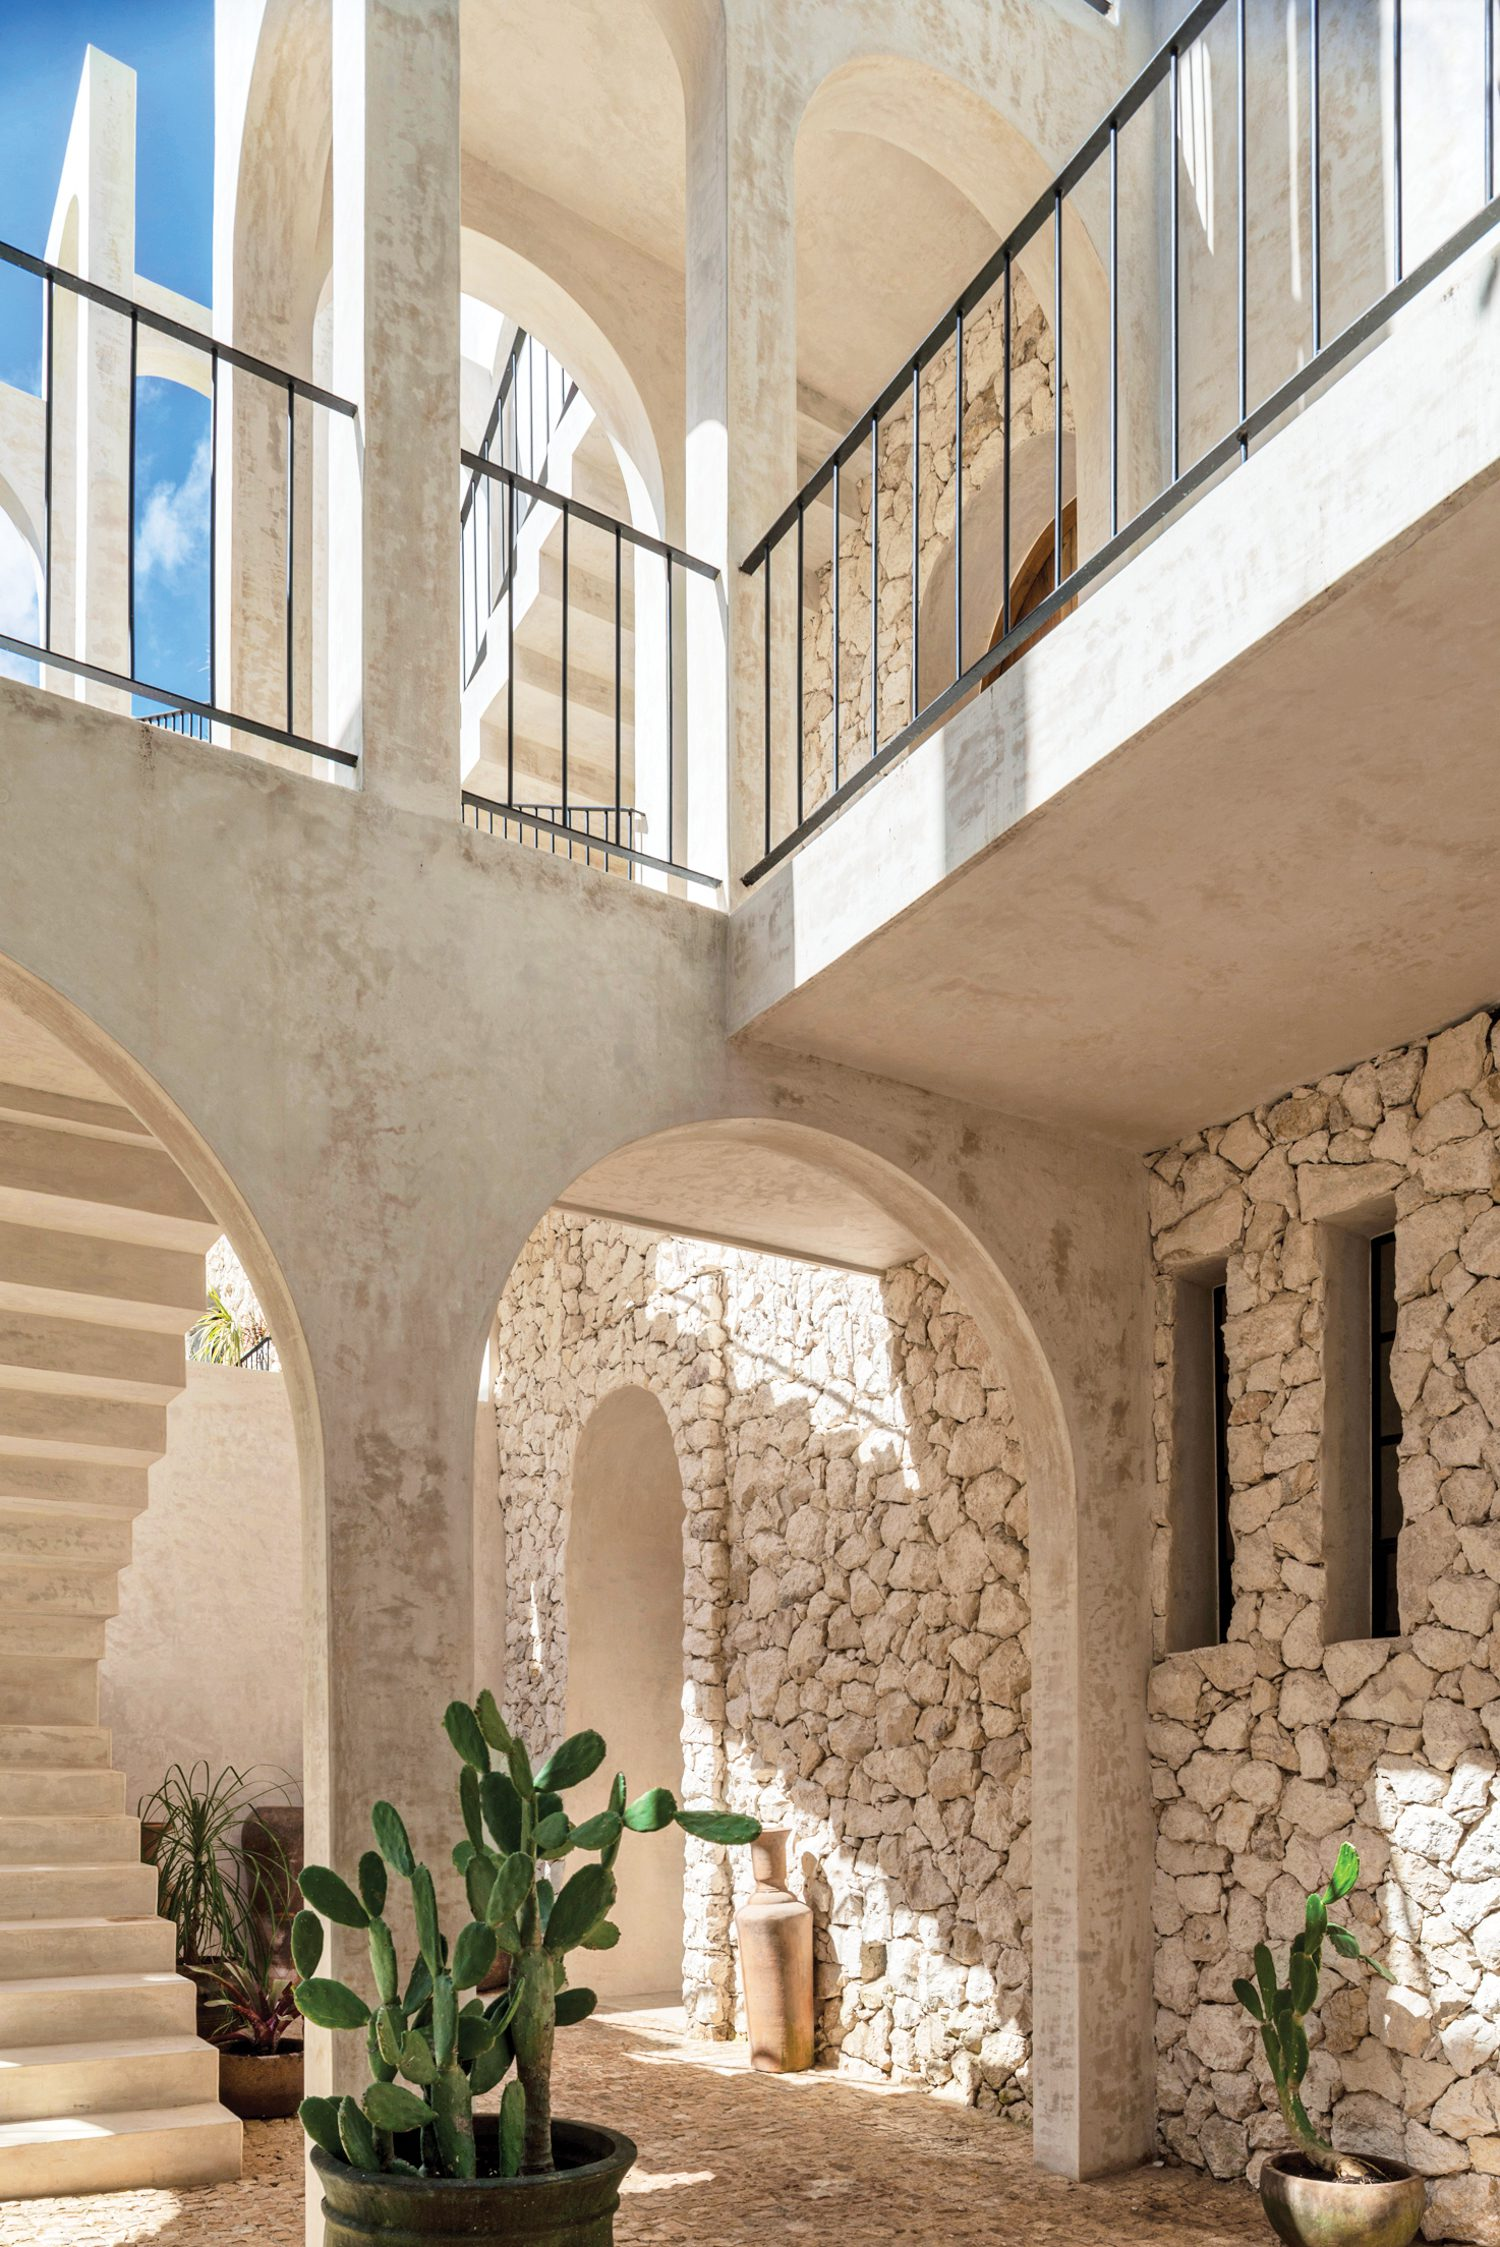 Visible on walls in the cobbled entry court is the fossilized local stone that gives the development its name.